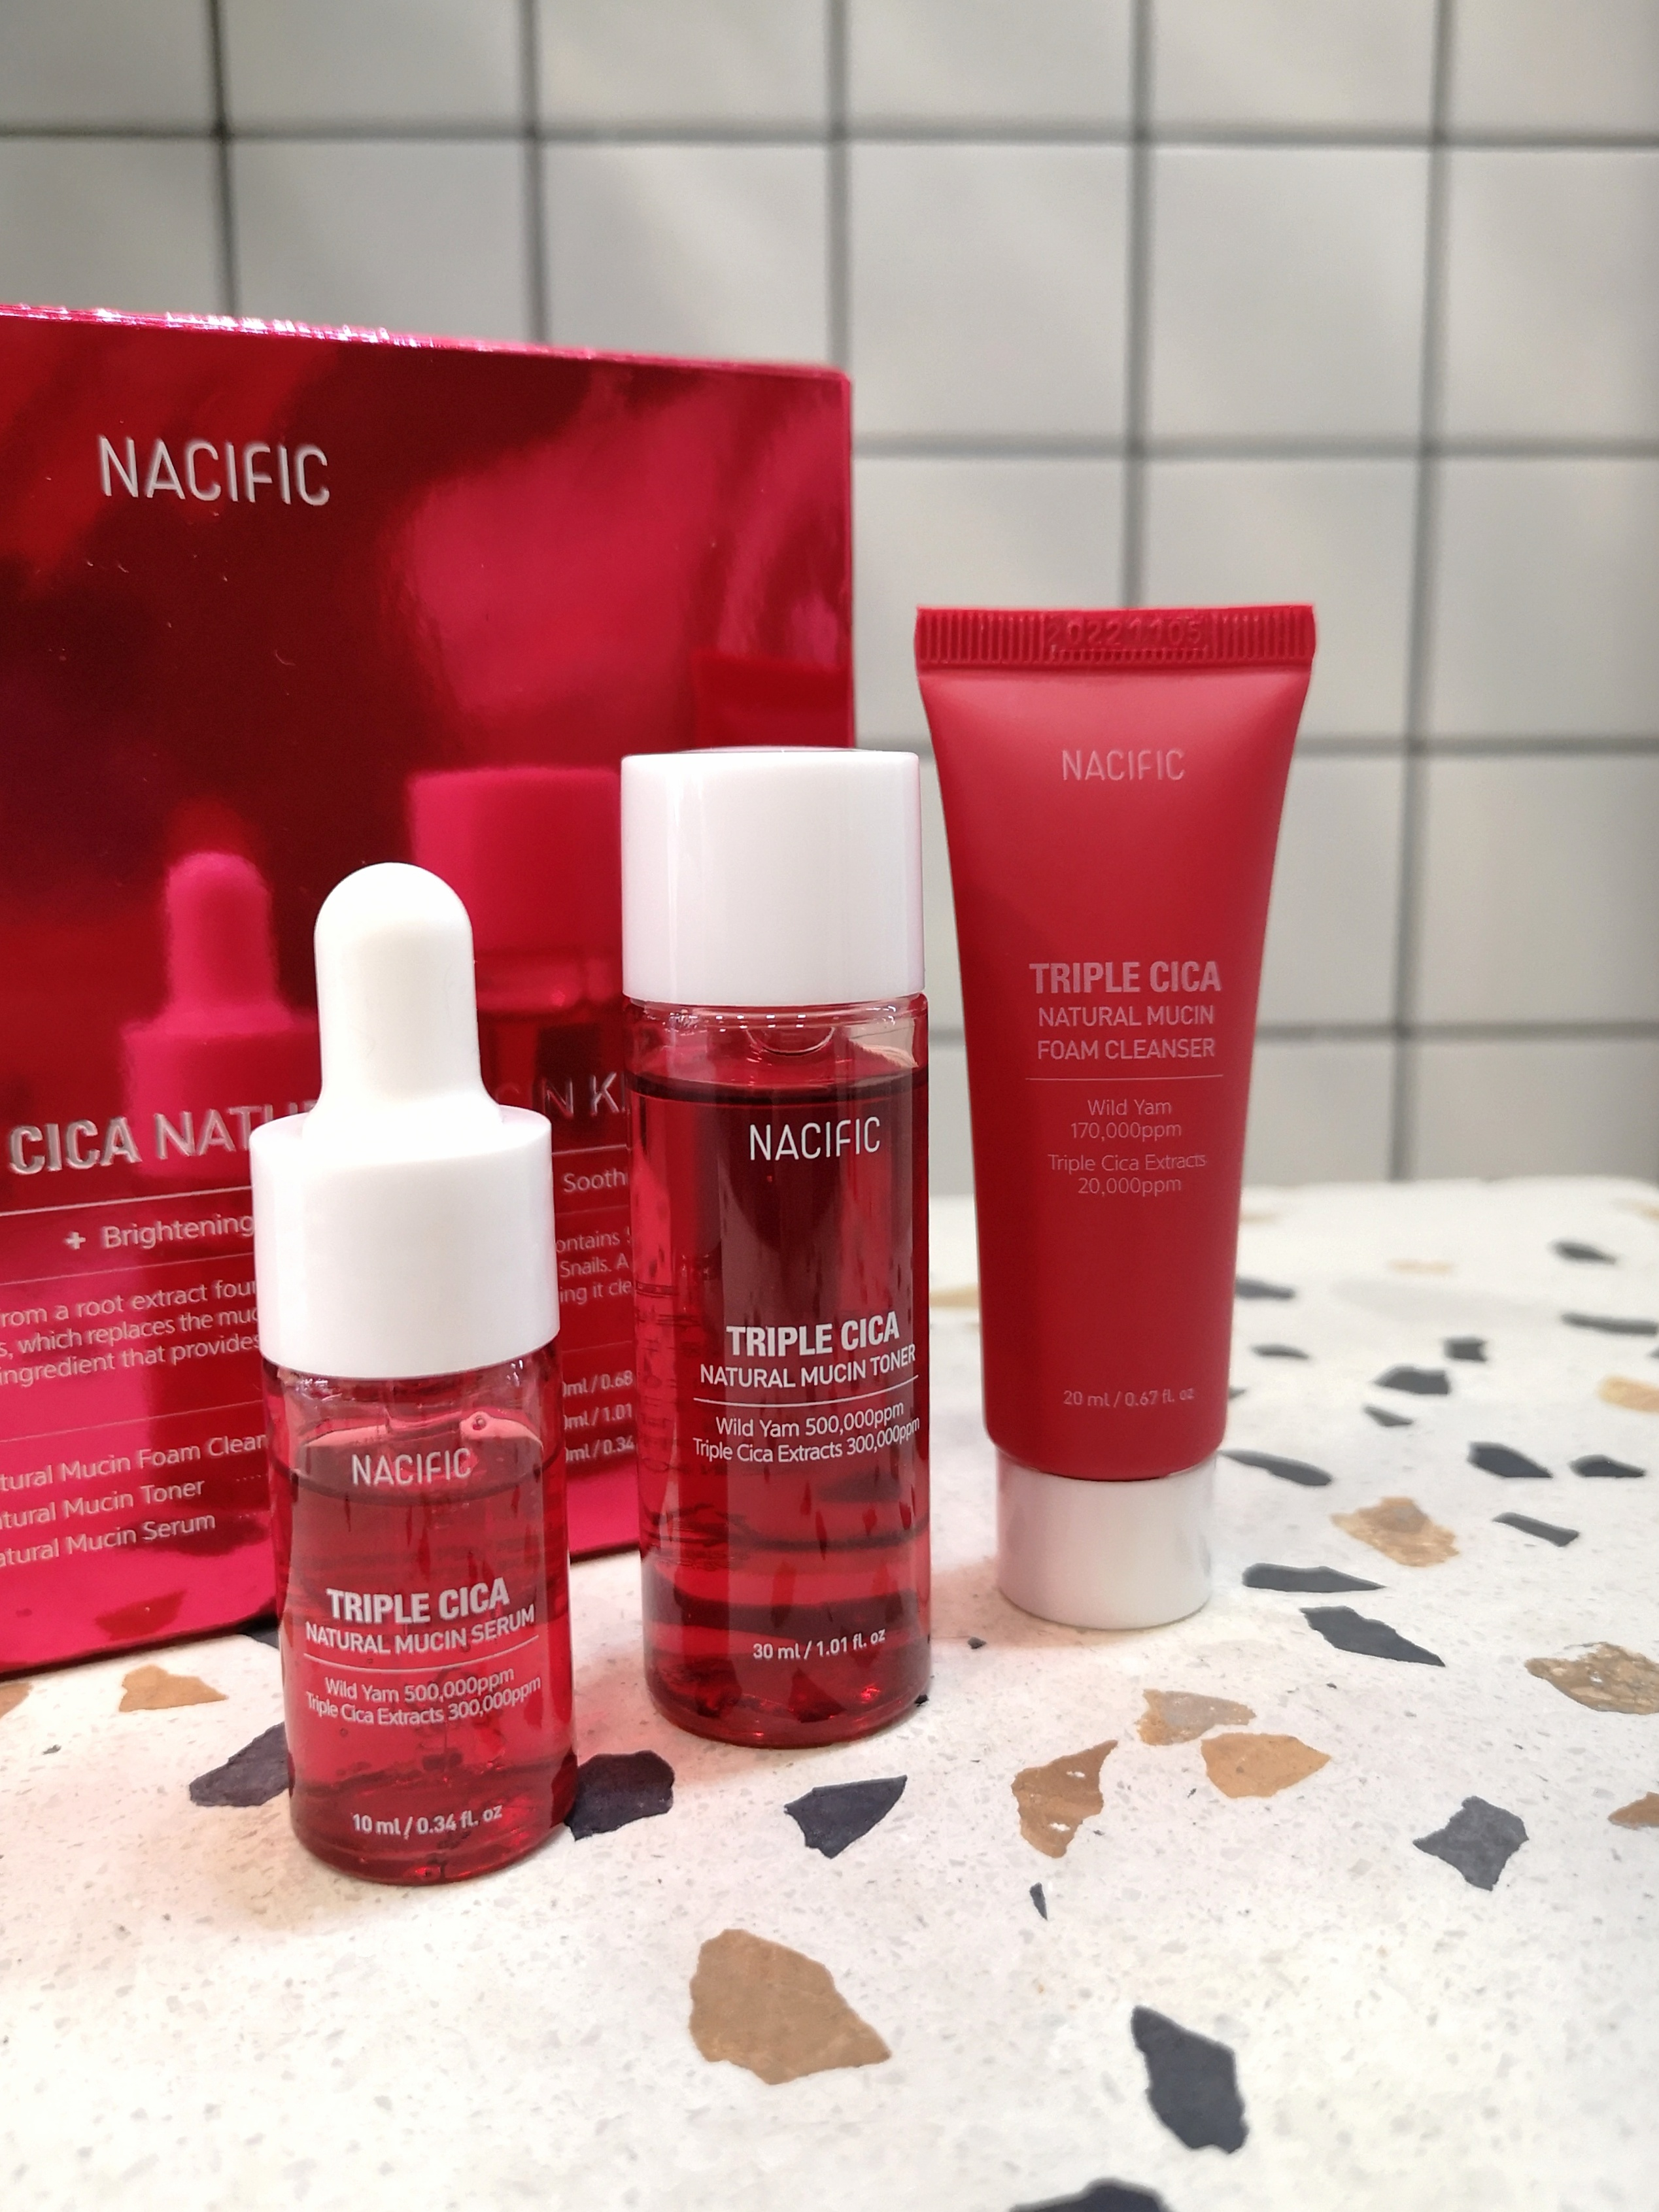 Nacific Triple Cica Natural Mucin Kit